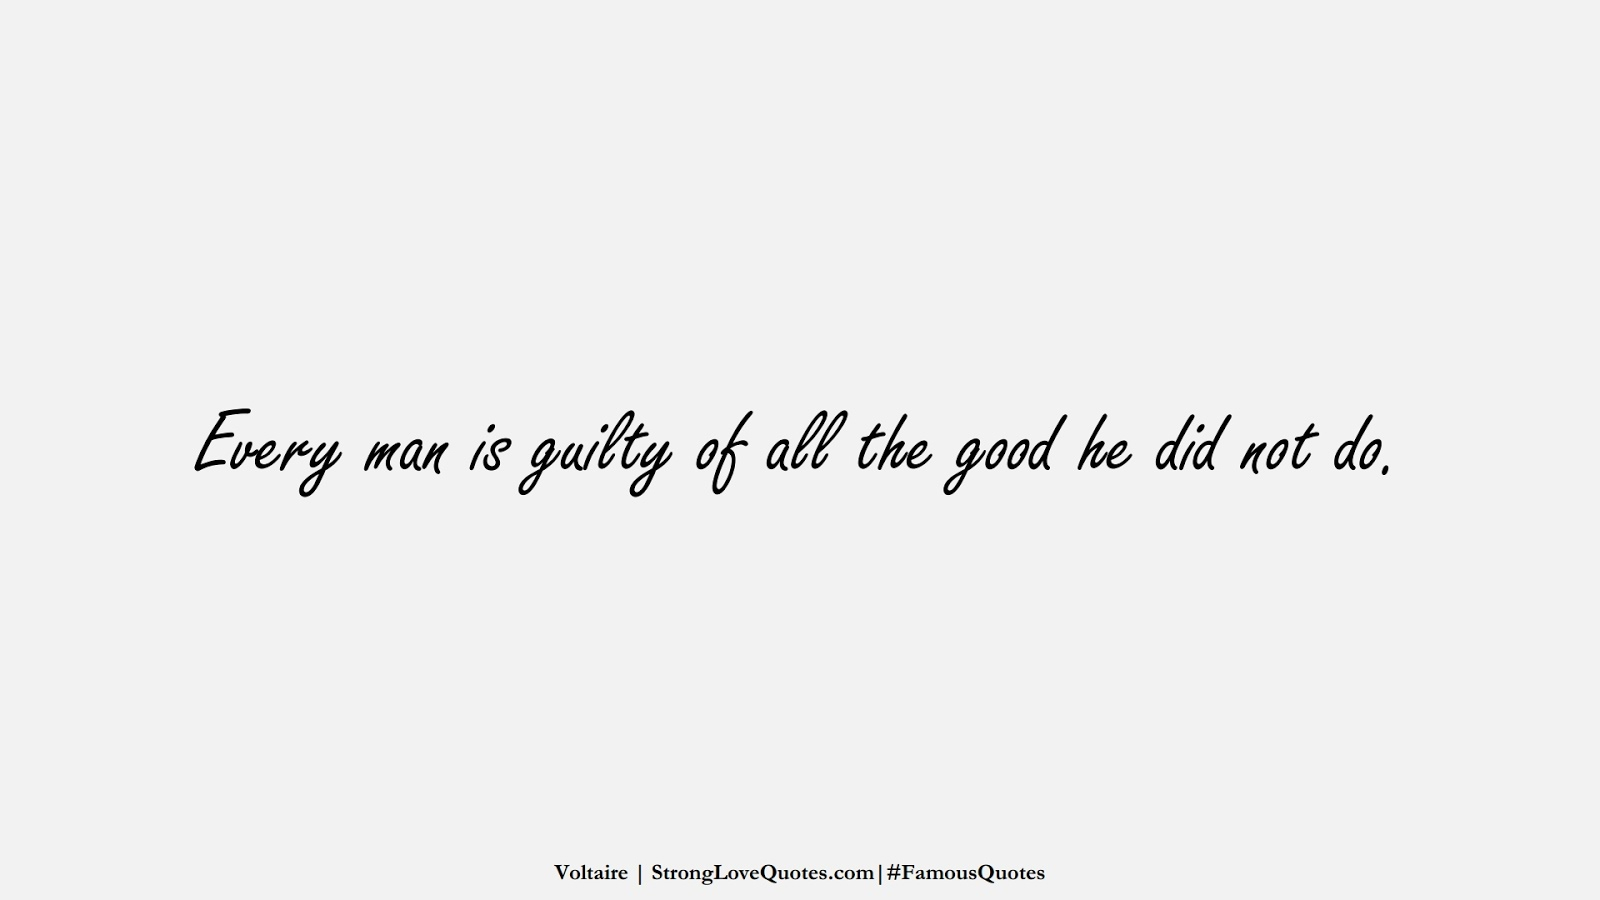 Every man is guilty of all the good he did not do. (Voltaire);  #FamousQuotes